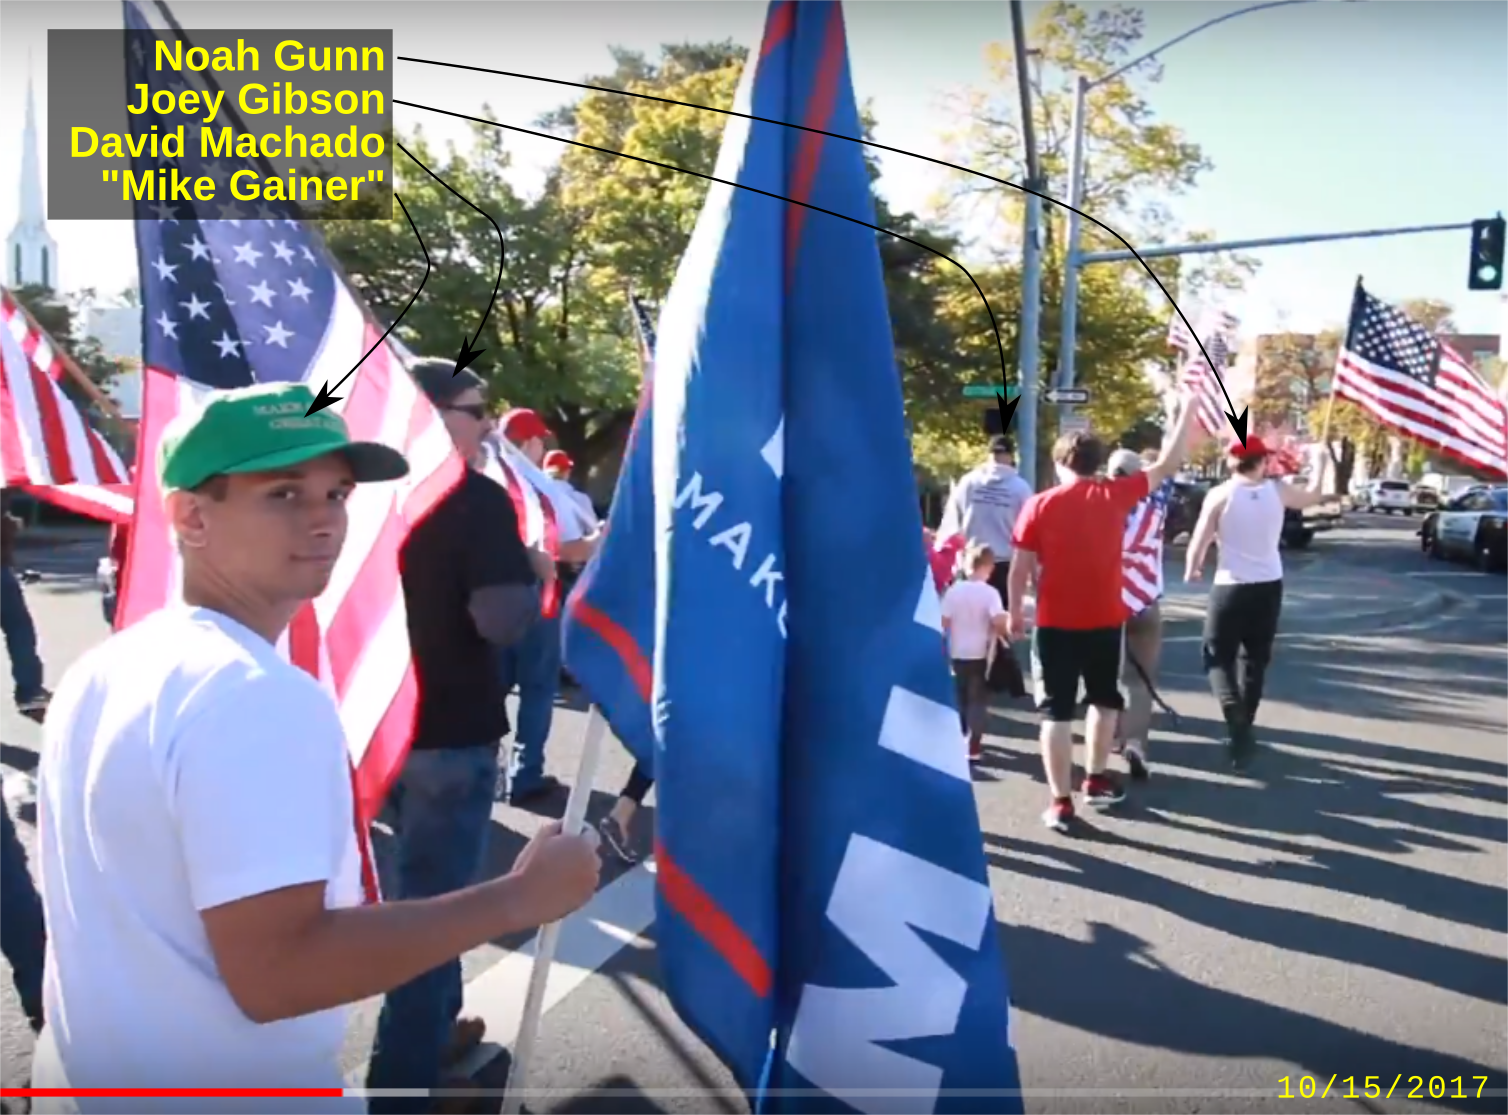 Noah Gunn at a Patriot Prayer rally with fascists